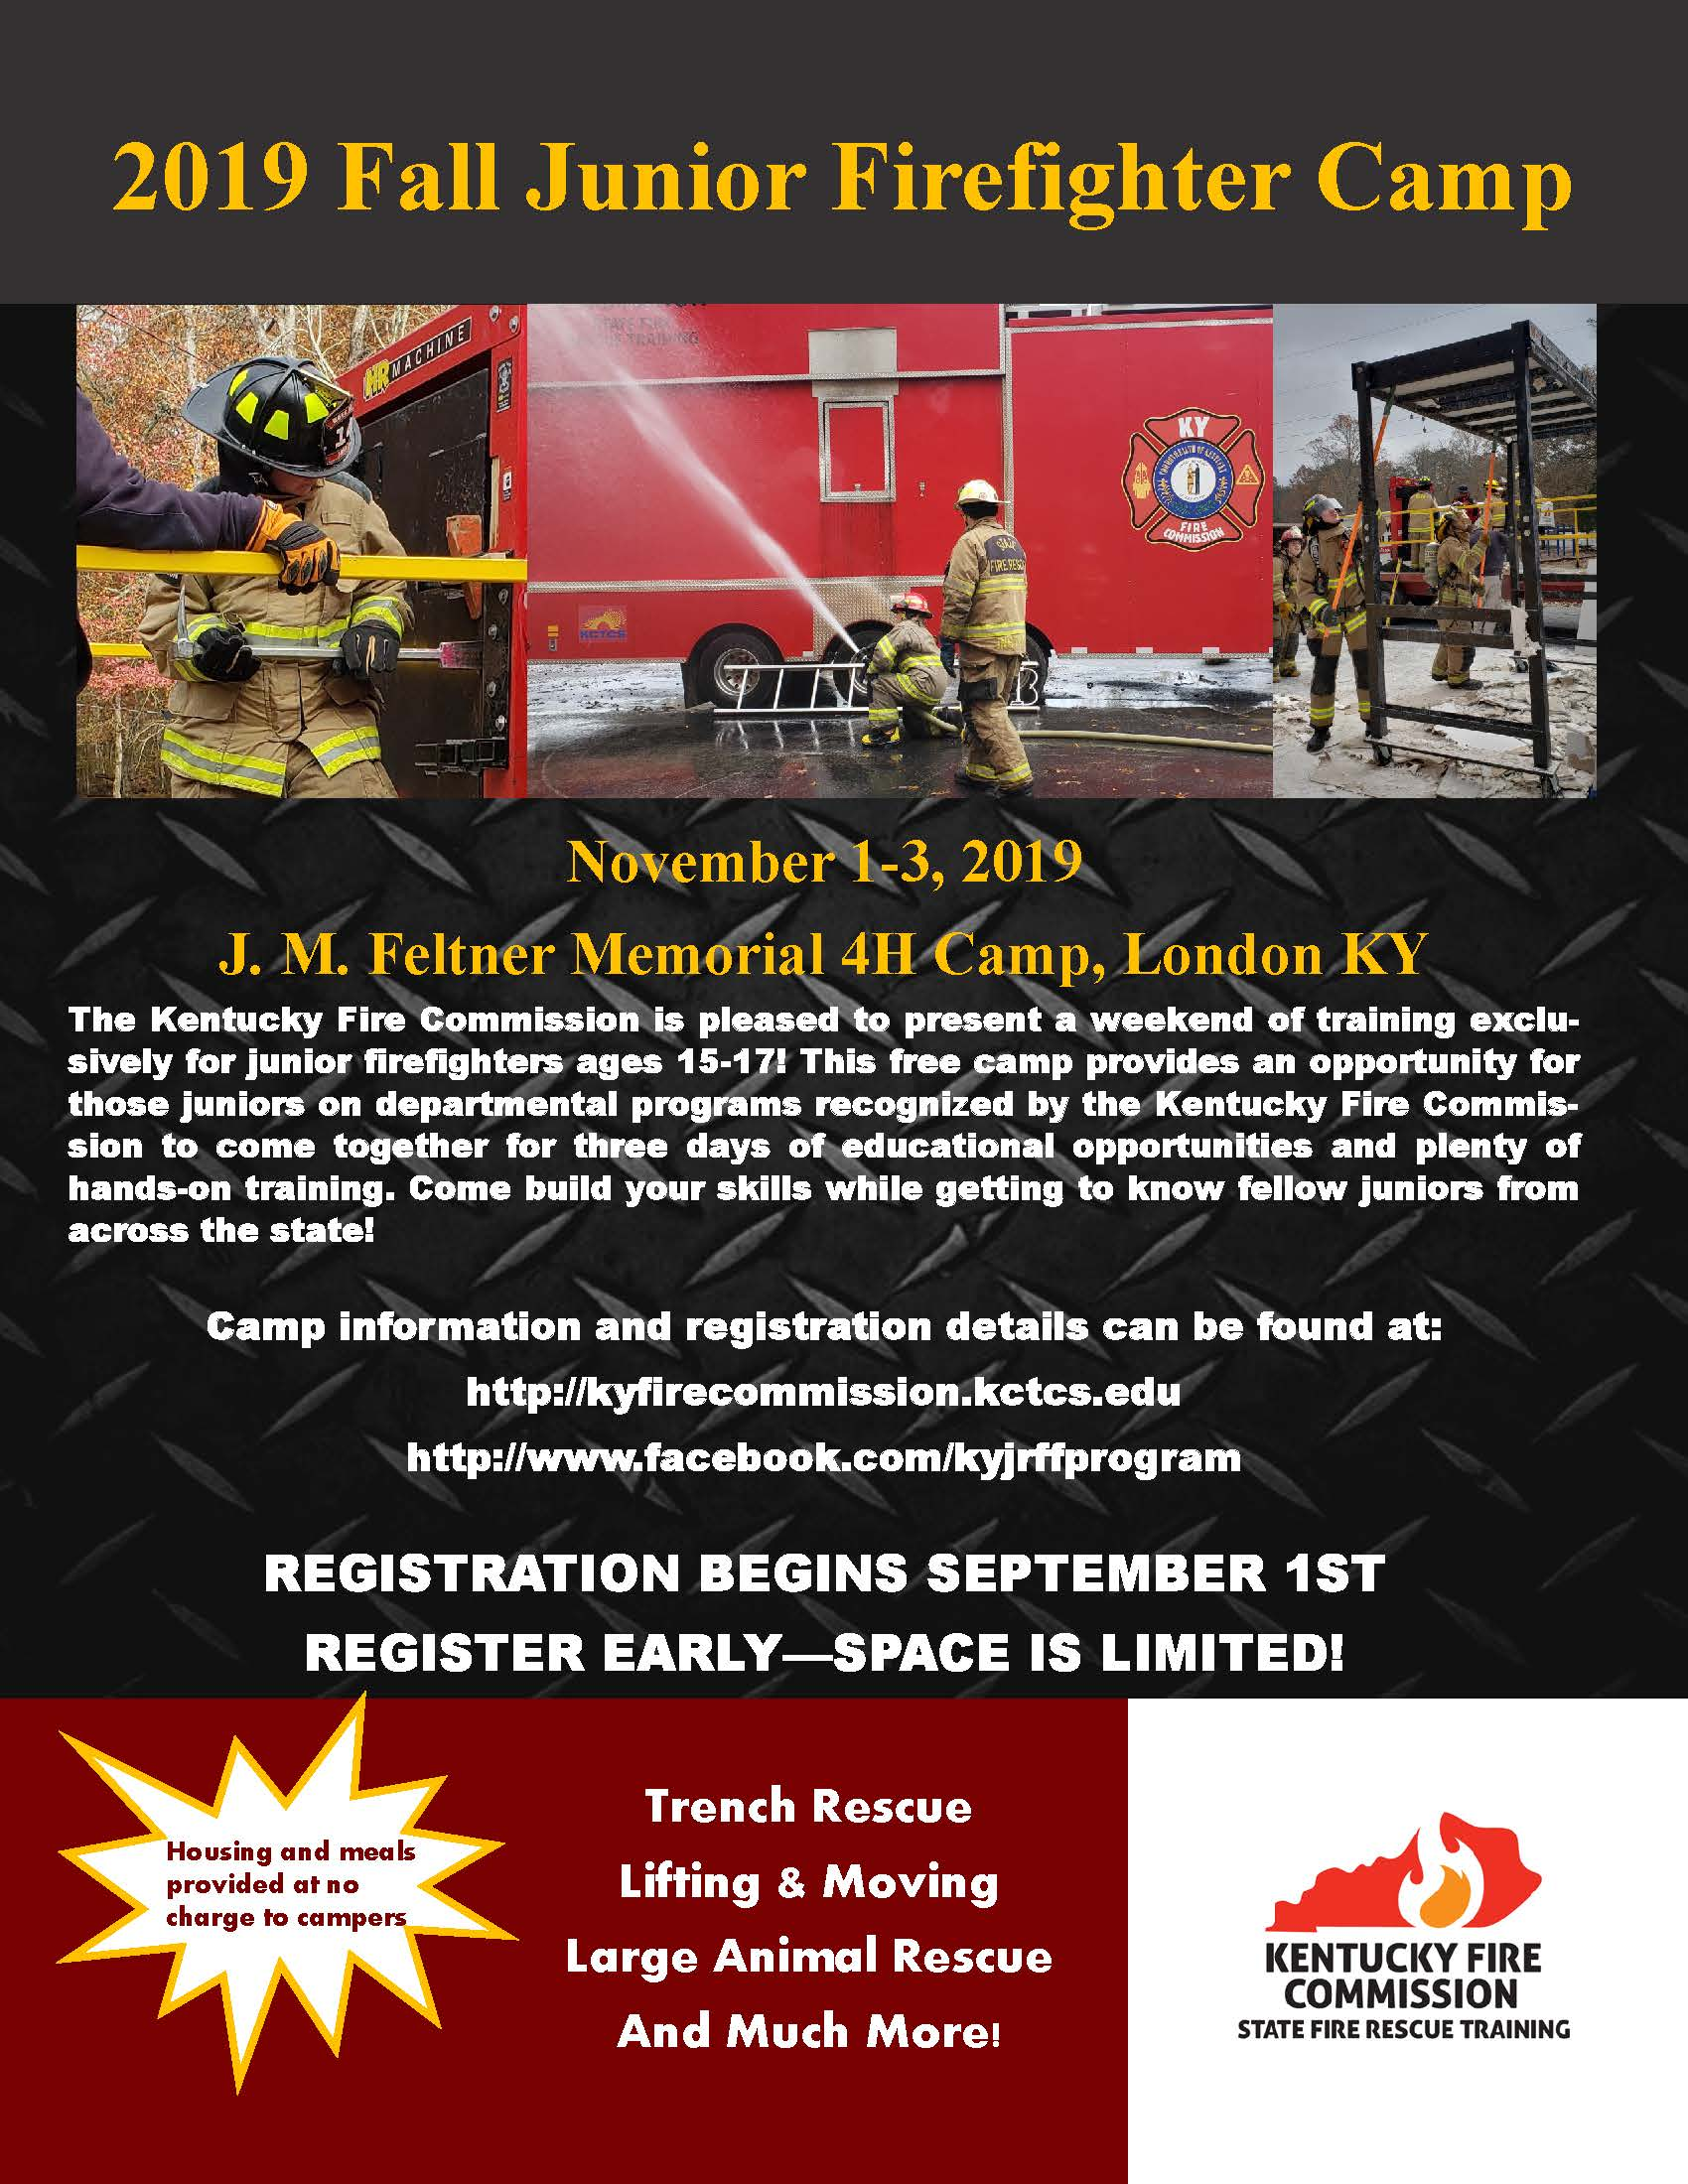 November 2019 Junior Firefighter Camp